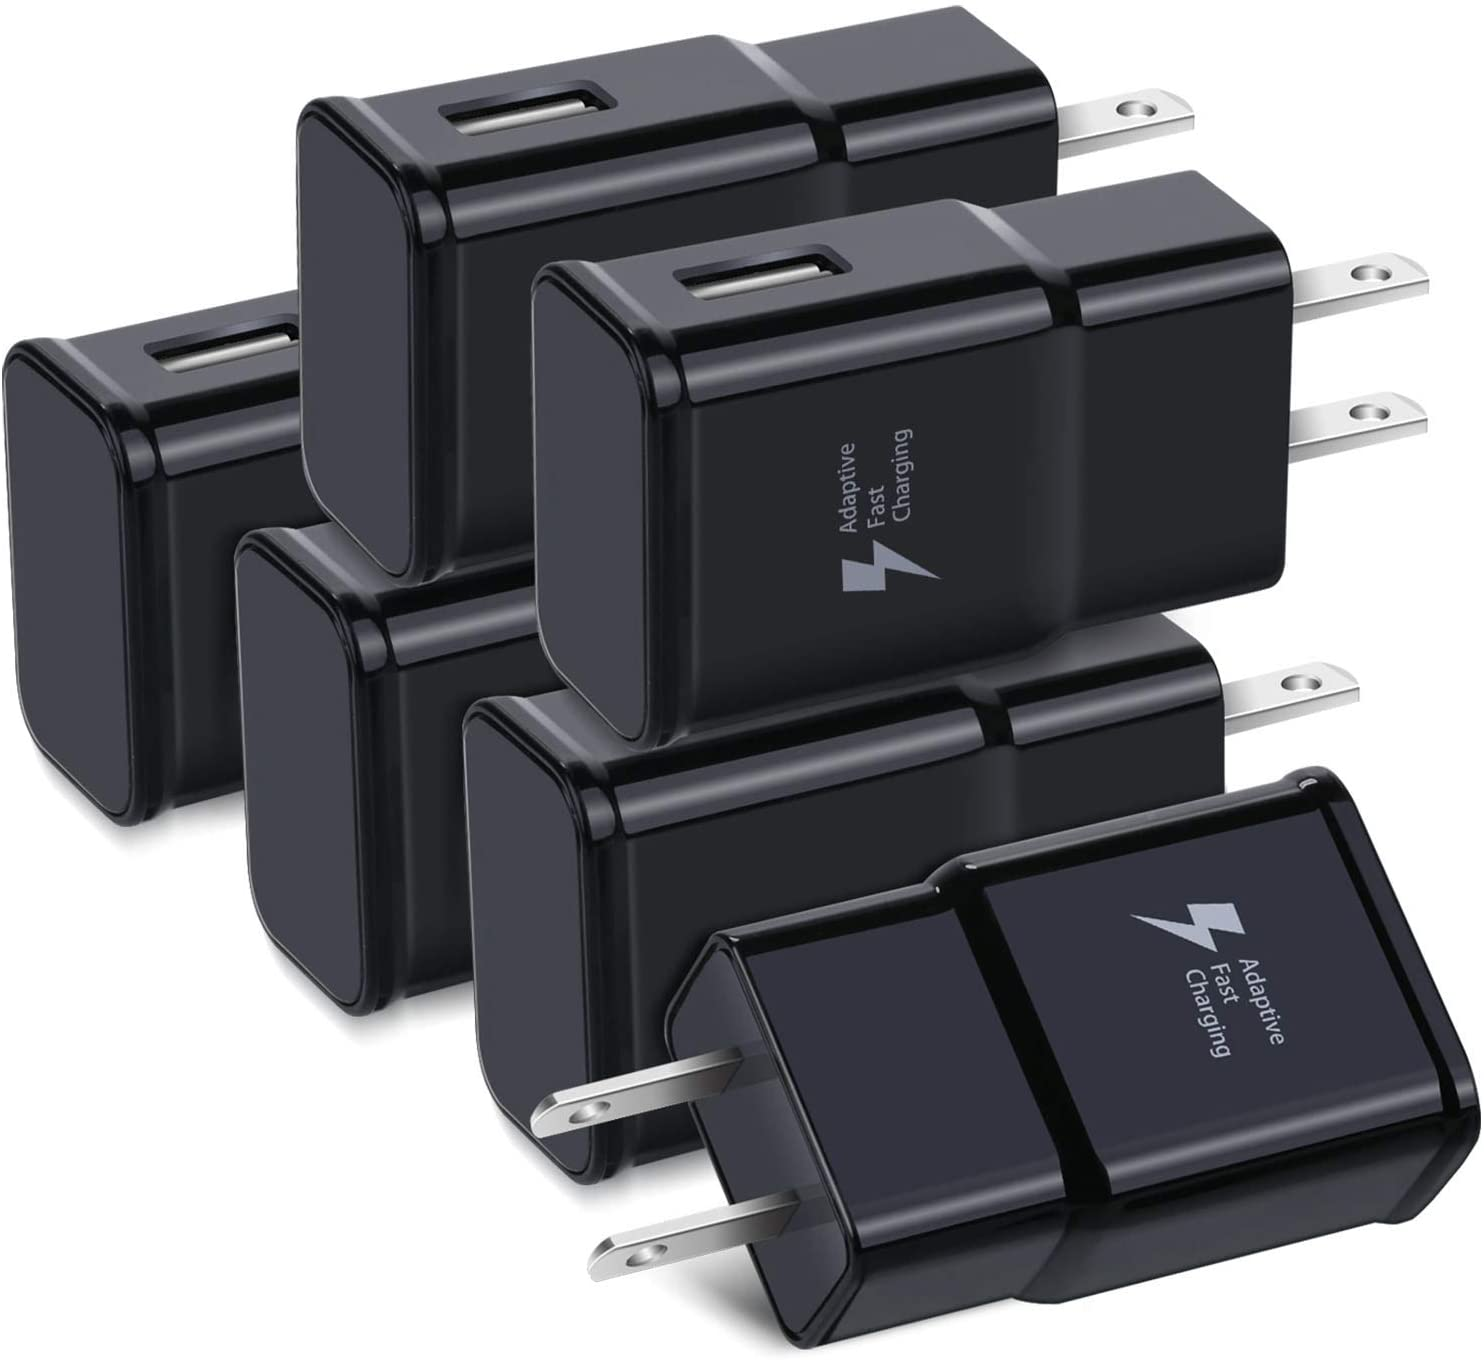 Adaptive Fast Charging Wall Charger Adapter, Qihop 6-Pack Fast Charging Block Travel USB Charger Plug Compatible Samsung Galaxy S20 S10 S9 S8 S7 S6 Edge/Plus/Active,Note 8 9 10, iPhone,LG,HTC (Black)